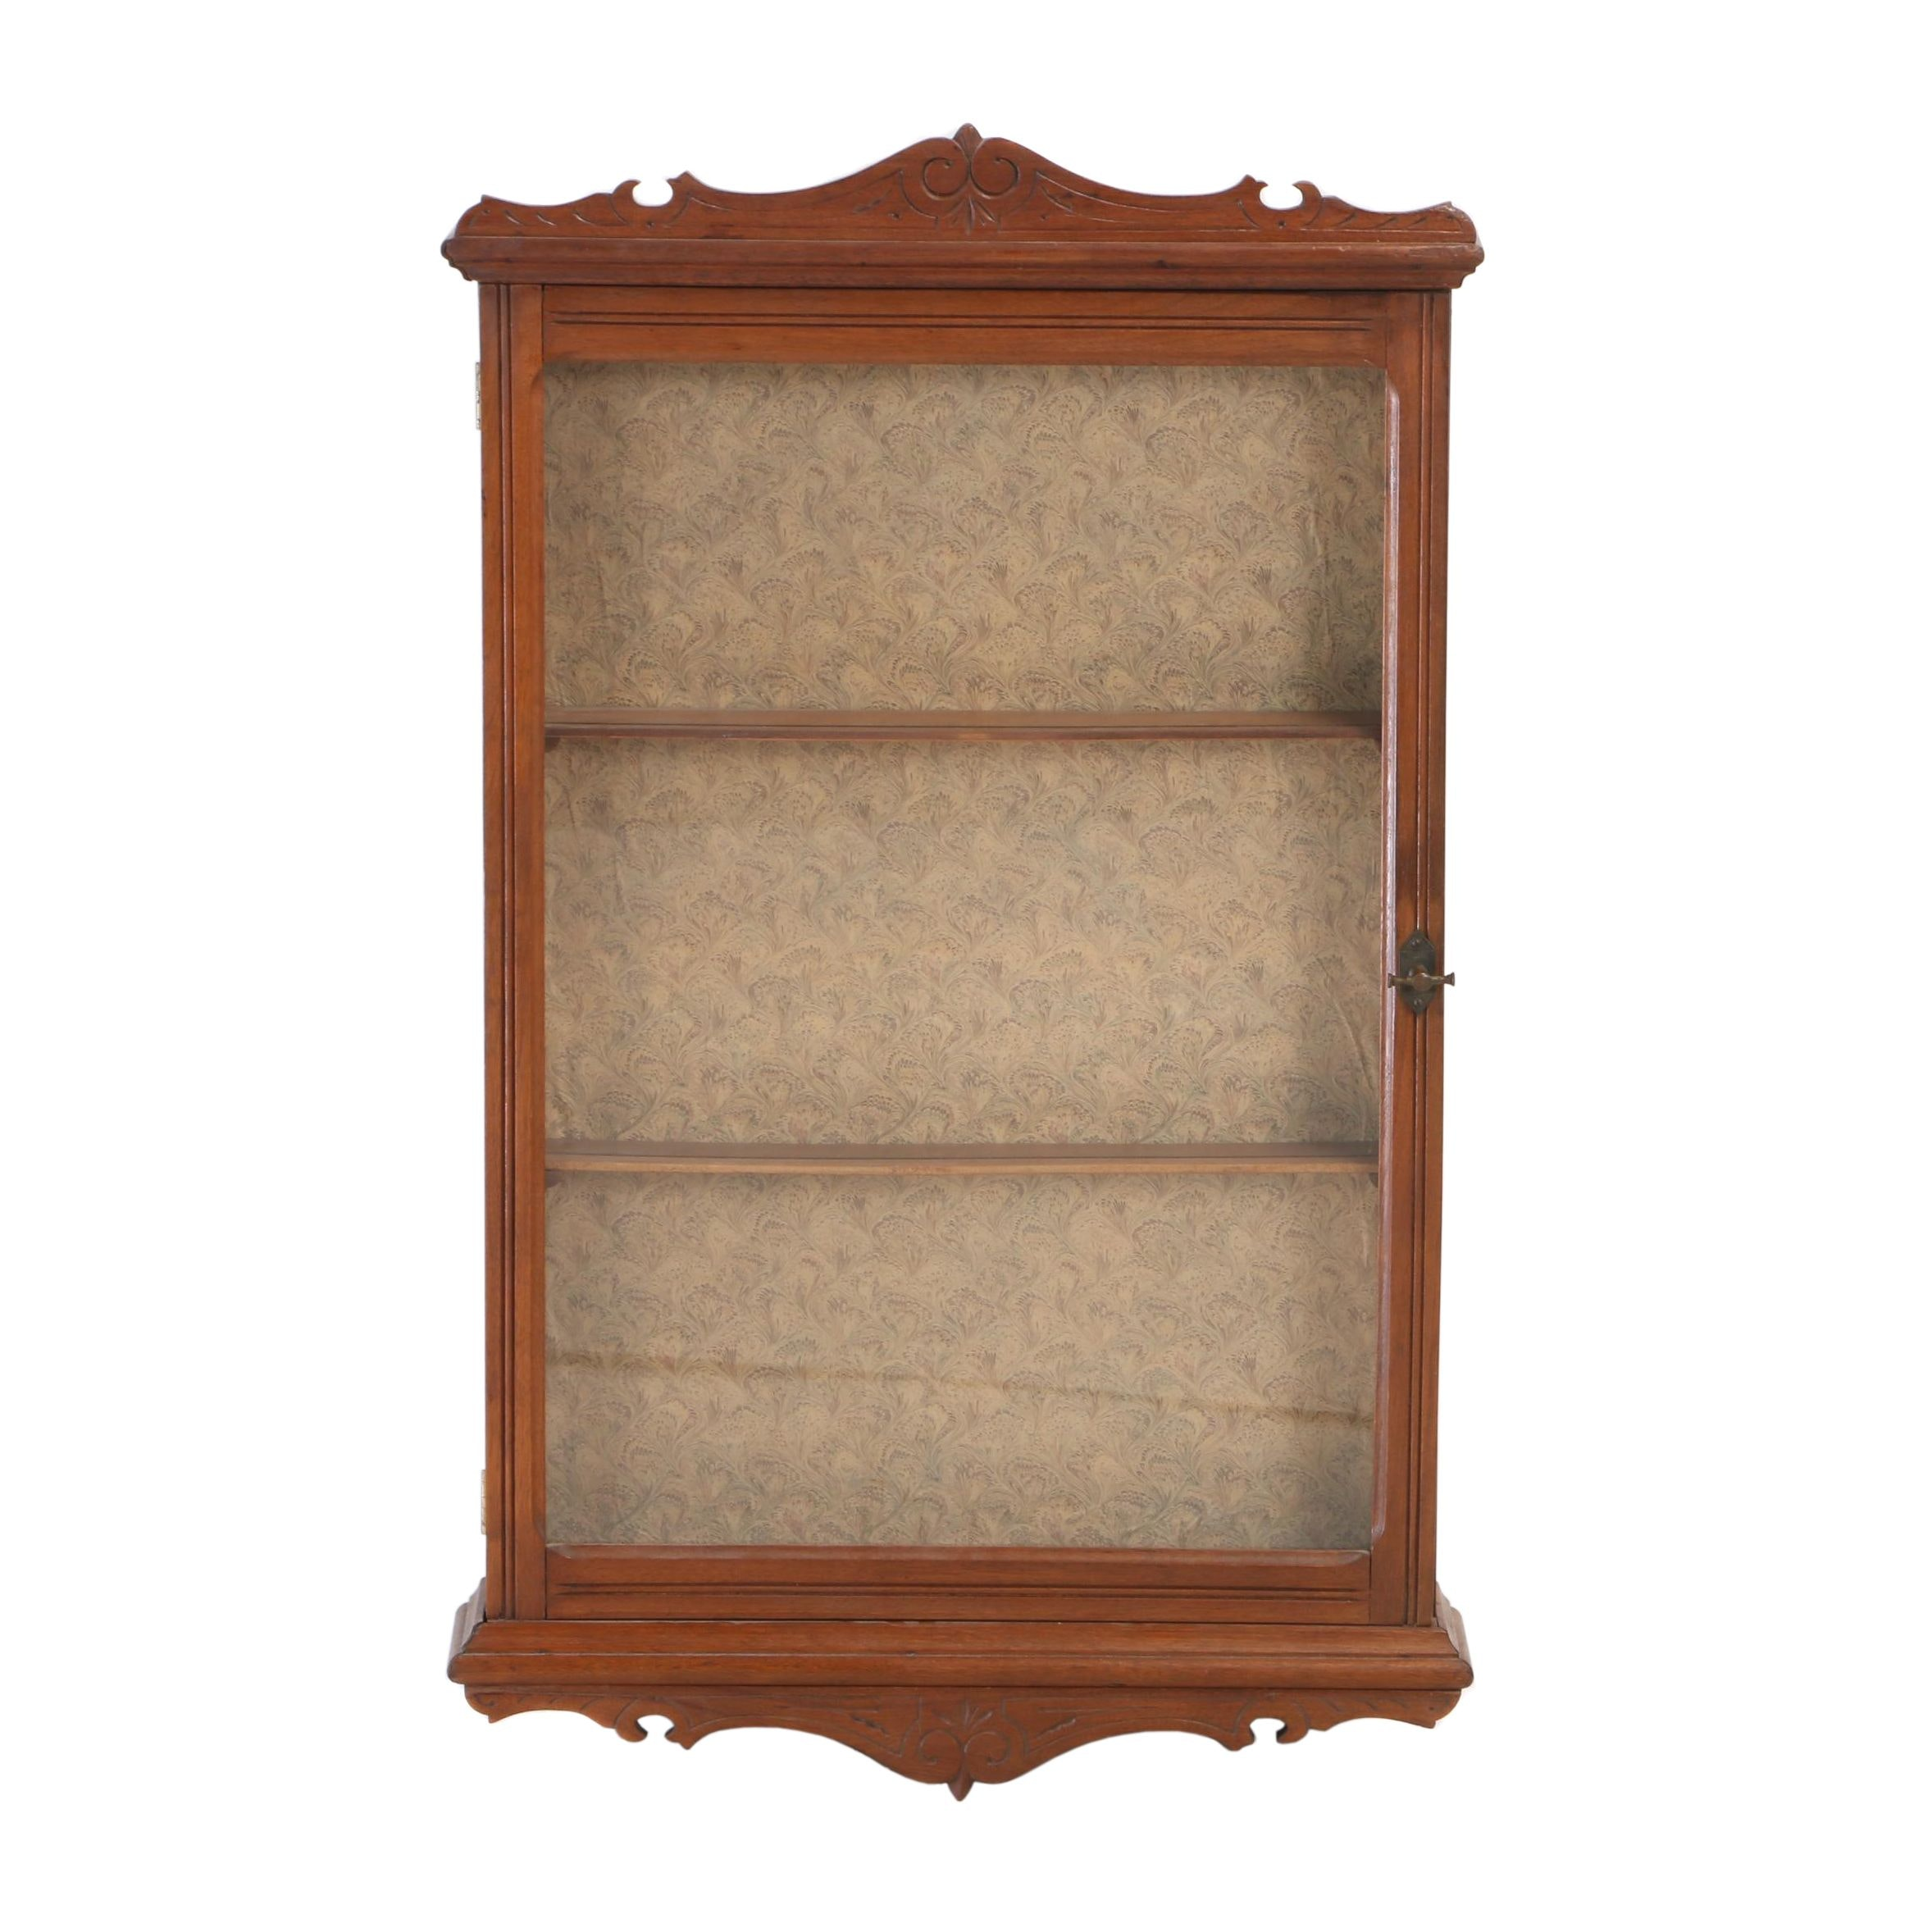 Victorian Walnut Hanging Display Cabinet, Late 19th Century